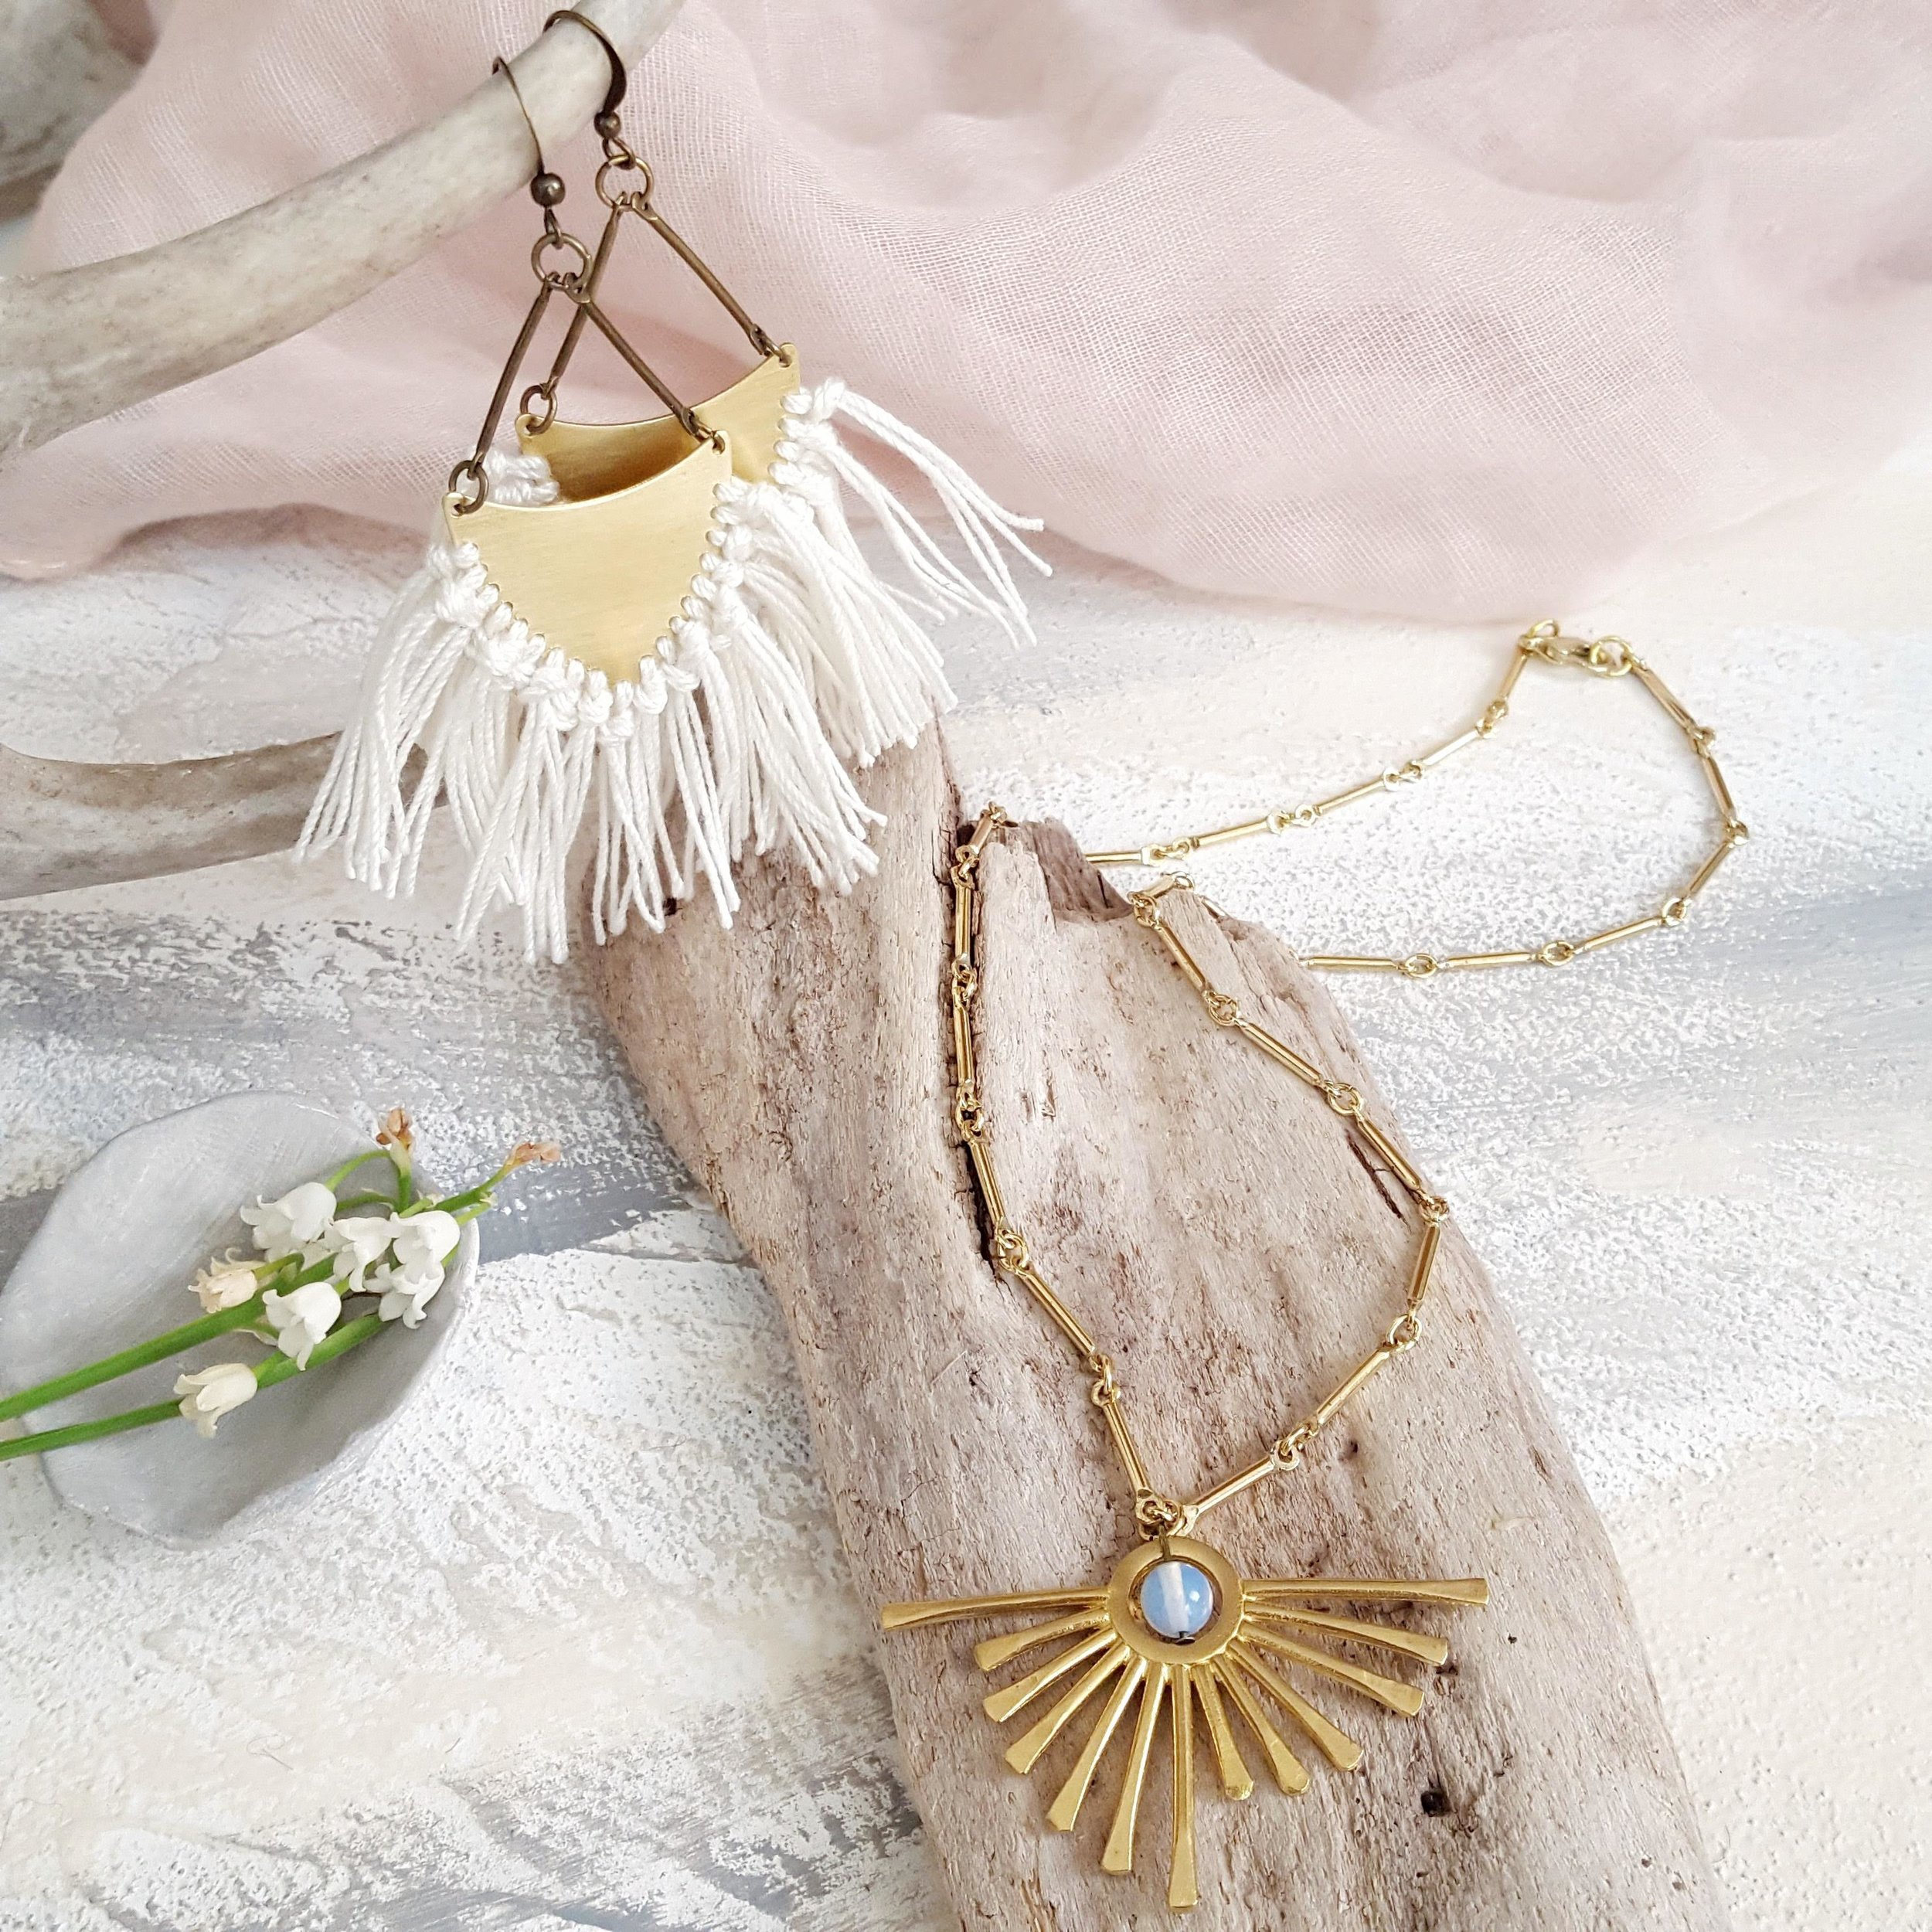 Fringe earrings sunburst necklace